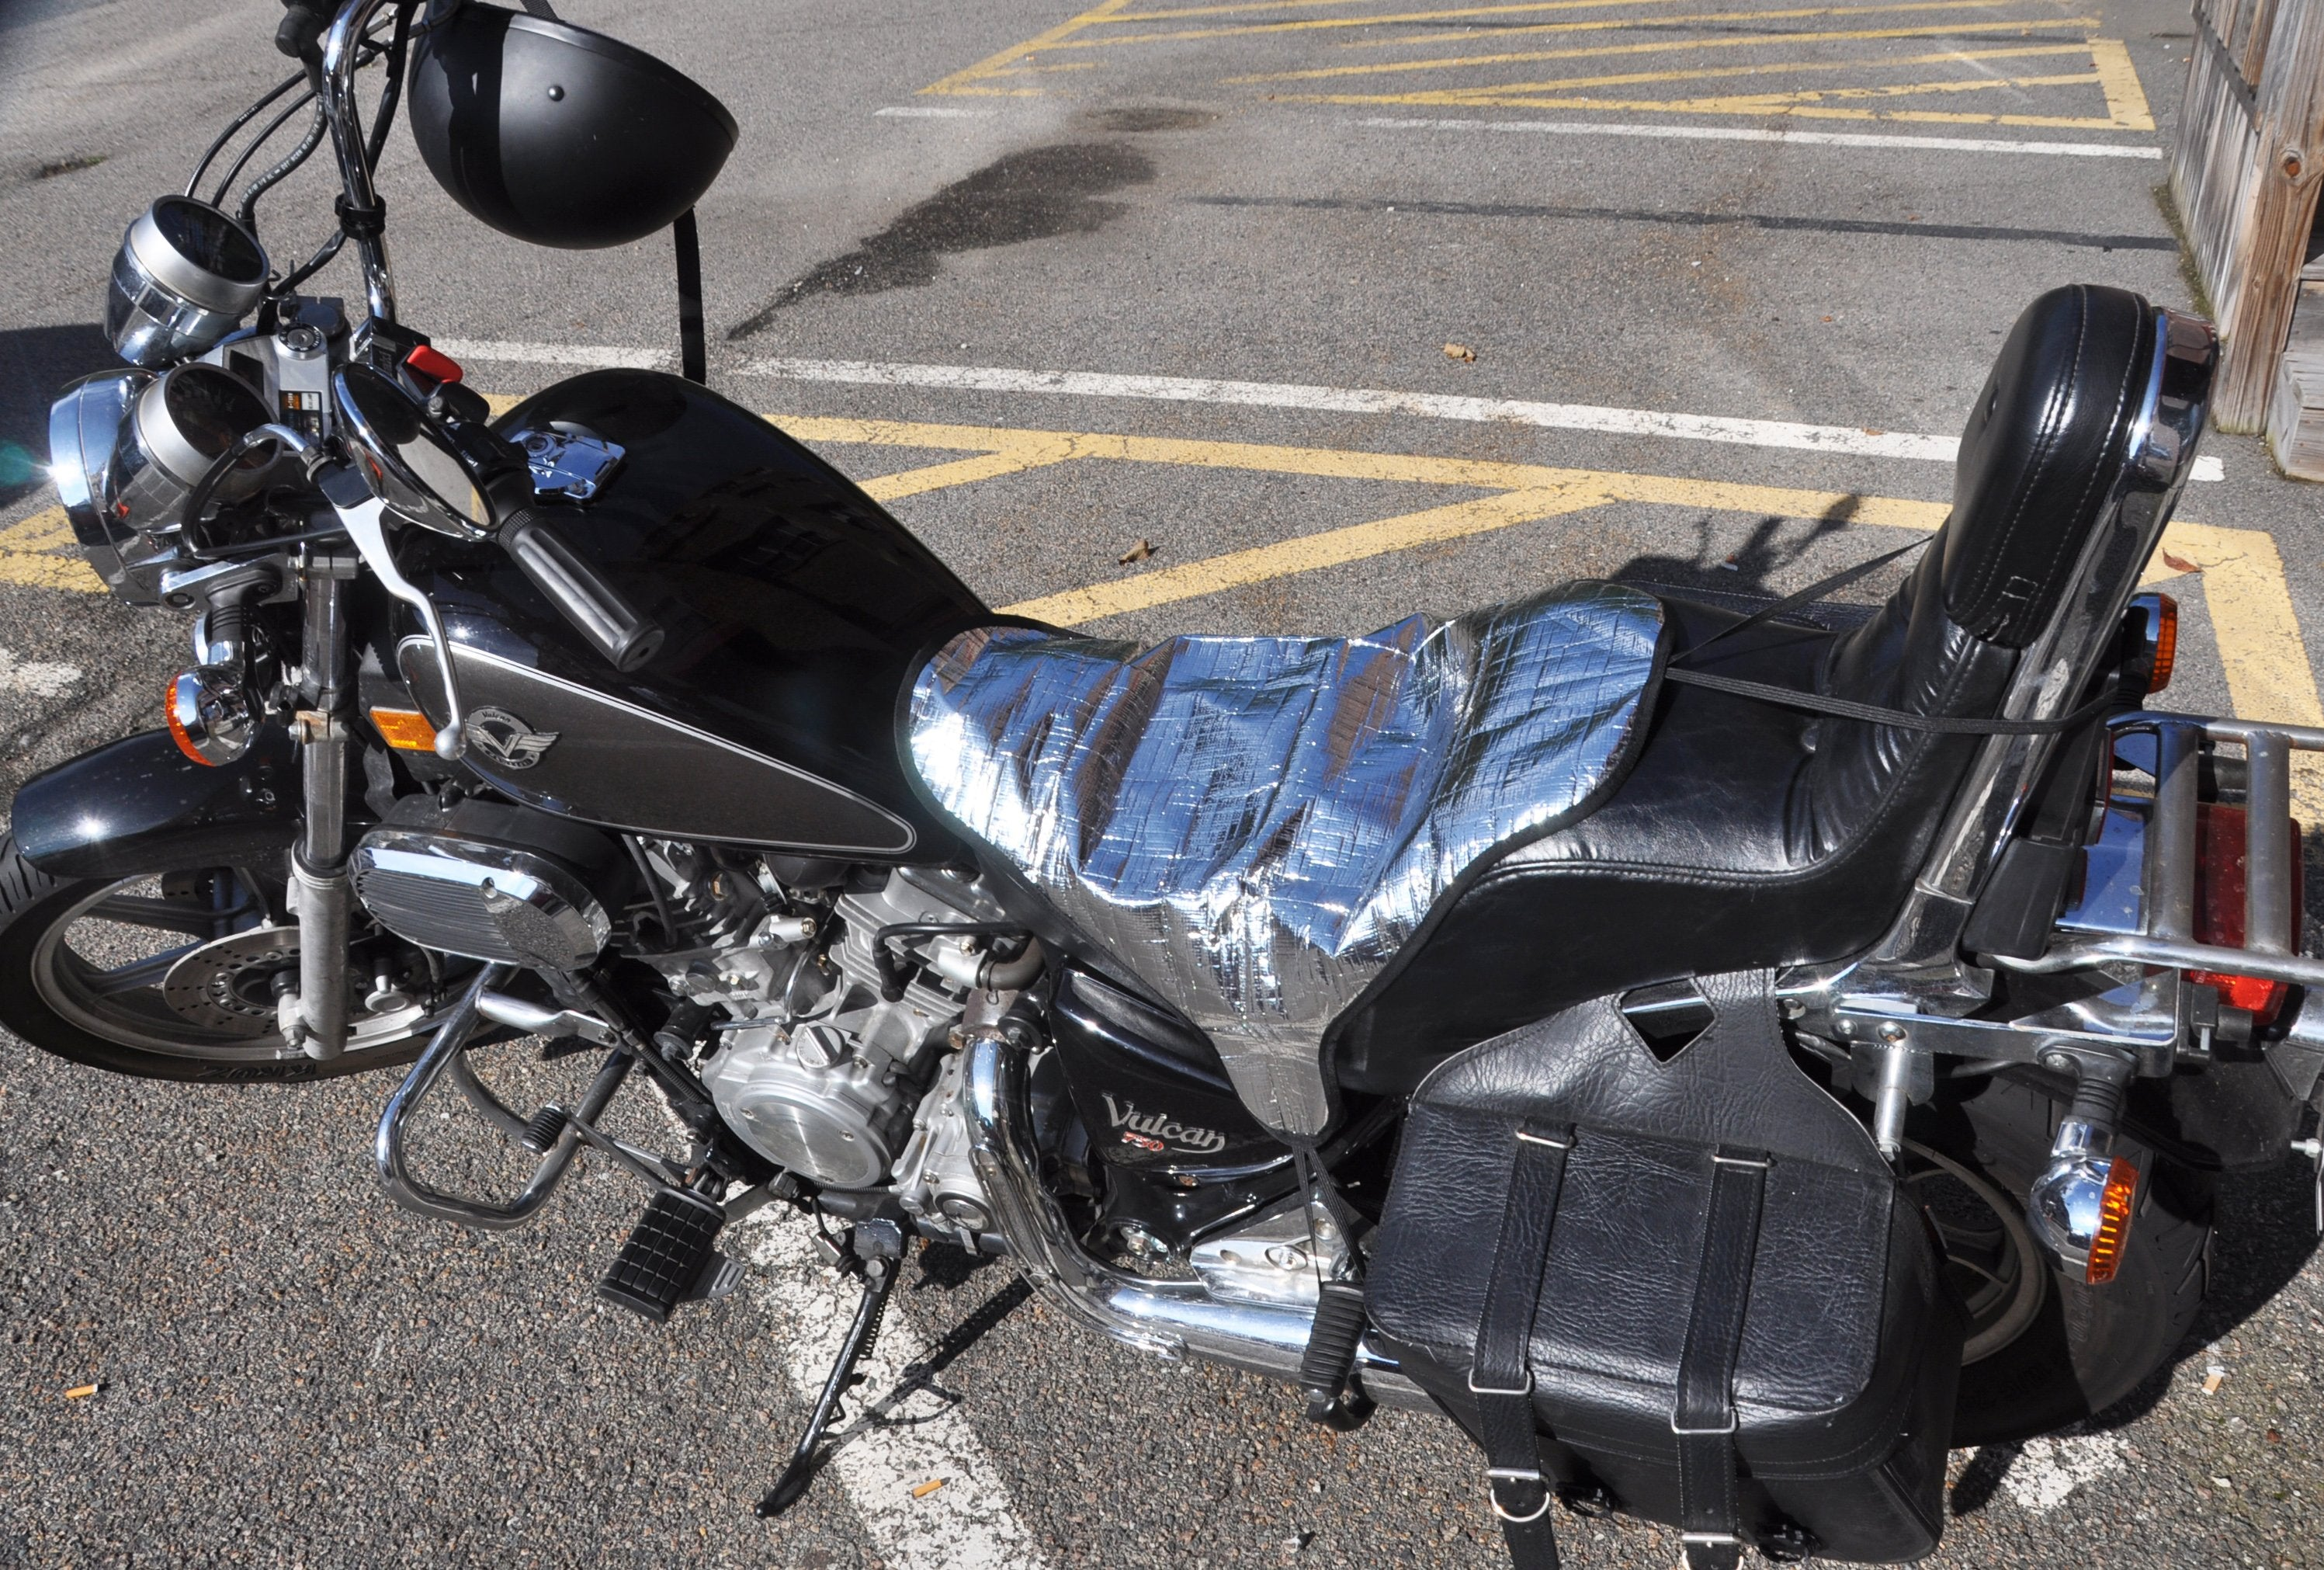 Sun Reflective and Waterproof Motorcycle Seat Cover